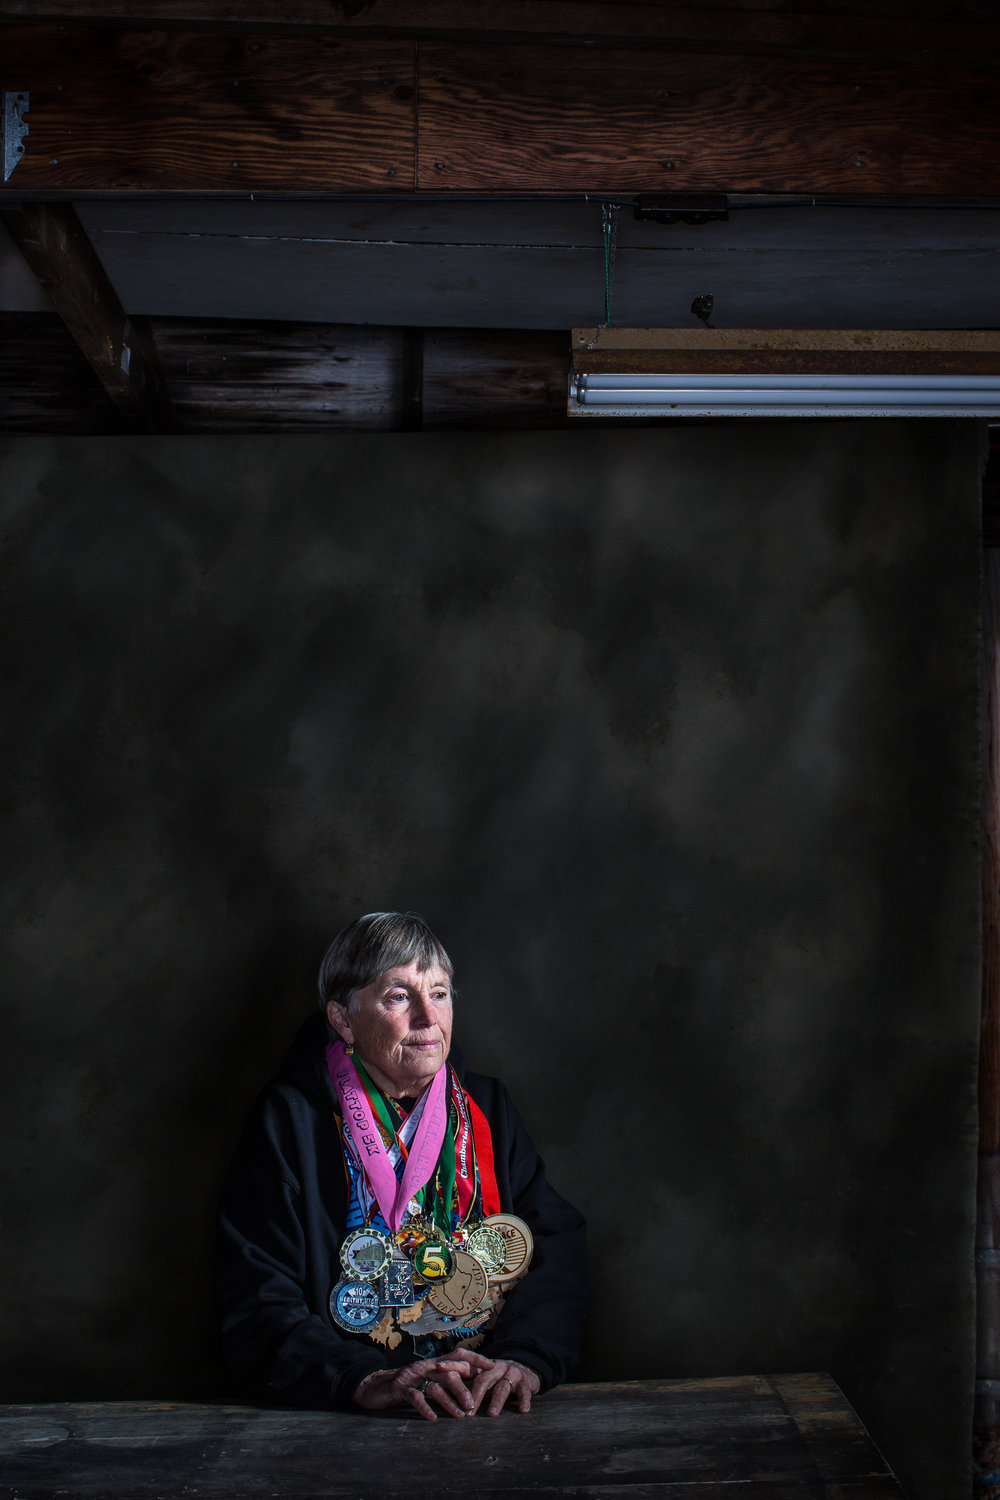 """Robin Emery, 72, of Lamoine, Maine has been running races for more than 50 years and logged enough miles to circumnavigate the globe one and a half times. Participating in approximately 30 races a year and running every day, she has pushed through physical adversity, such as once suffering a frozen eyeball due to weather conditions (she now runs with ski goggles in colder temps), and also broken through societal norms. When Robin signed up to run her first race in 1972, she was the first woman to ever enter the race. """"Women weren't supposed to sweat or be competitive then,"""" she said. """"It wasn't feminine."""" After entering the race and completing it three years in a row, she was finally given recognition: a basketball trophy, with a man on top. Photographed here in the garage of her family's home since the early 1900s, Robin's house is now filled with a life story of trophies, medals, race photos , plaques and memories from the myriad races she's won and participated in over the decades. Robin, who also was an elementary school teacher for more than 50 years, has a long-standing legacy in Maine. She was the second woman to ever be inducted into the Maine Running Hall of Fame, and also has a trophy named after her at that same Labor Day race."""